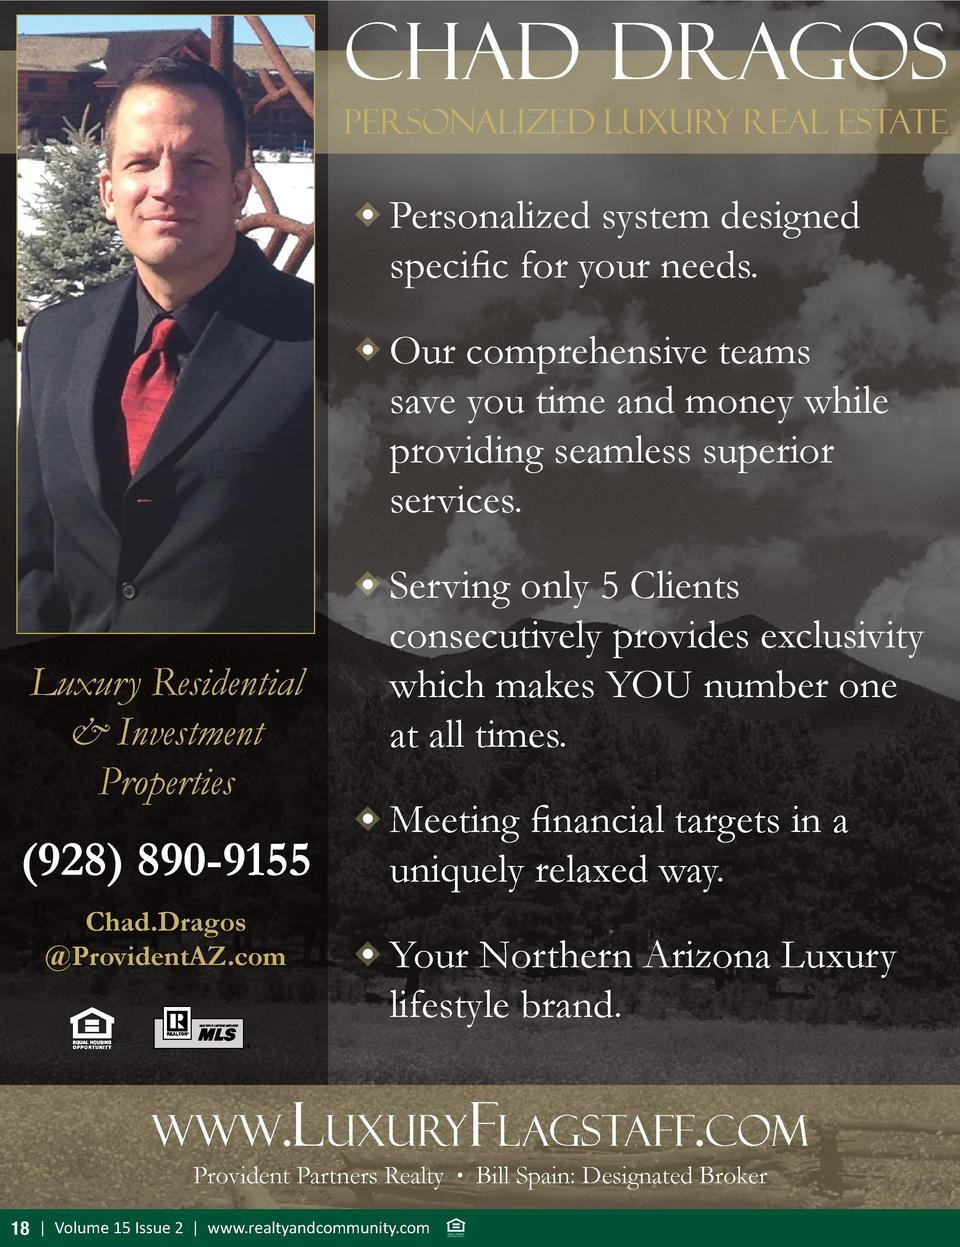 Chad Dragos Personalized Luxury Real Estate      Personalized system designed specific for your needs.     Our comprehensi...